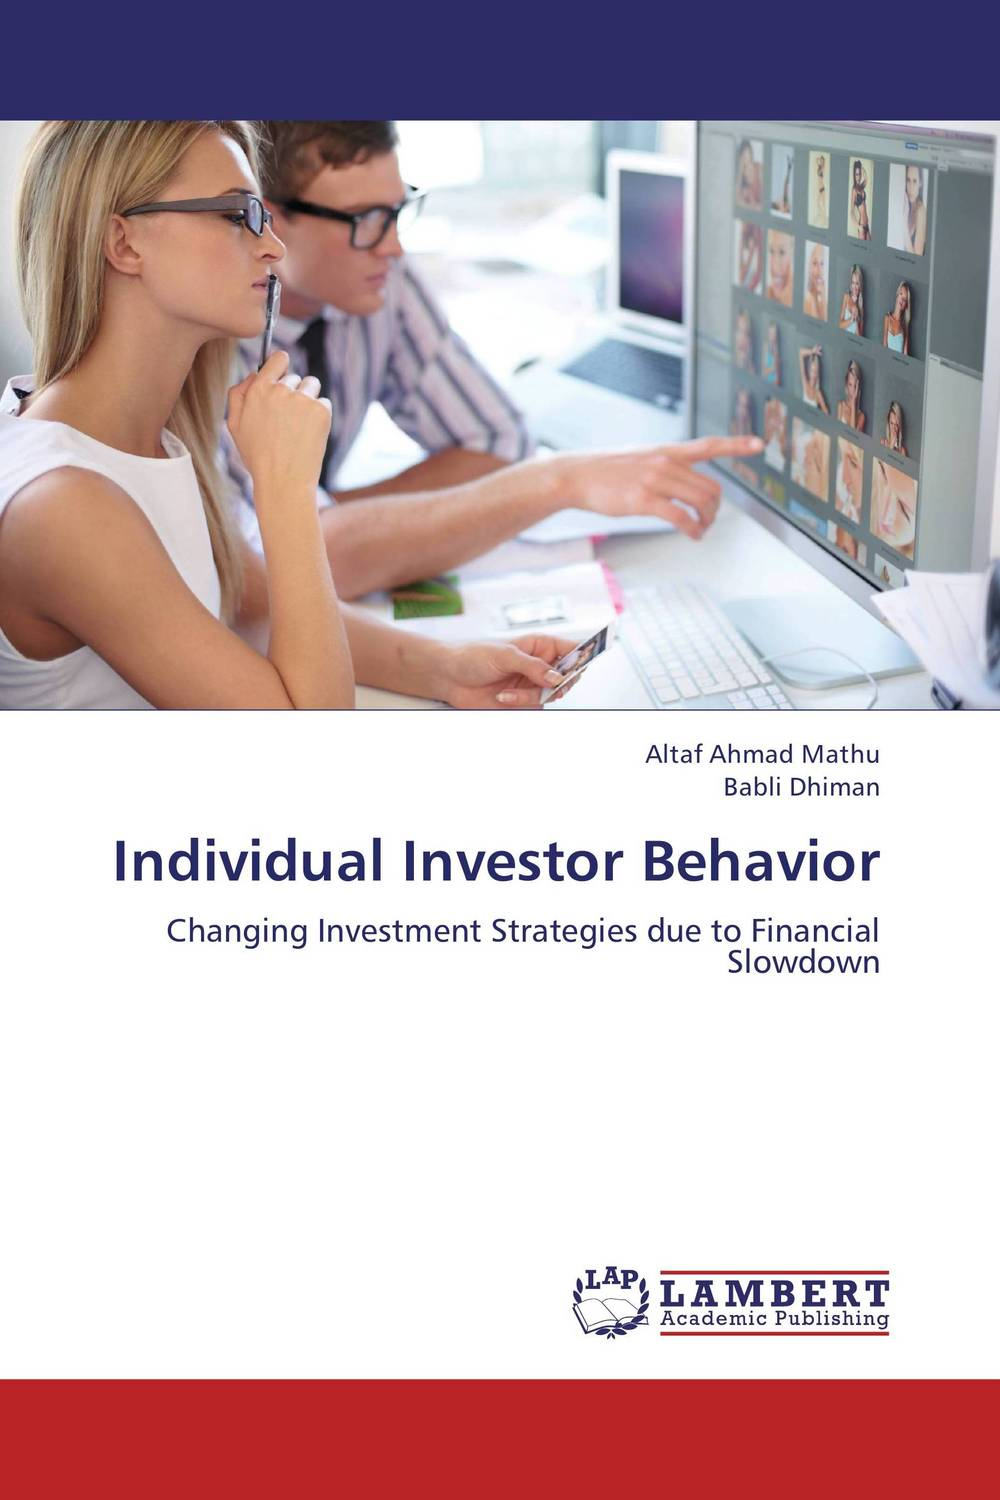 Individual Investor Behavior theodore gilliland fisher investments on utilities